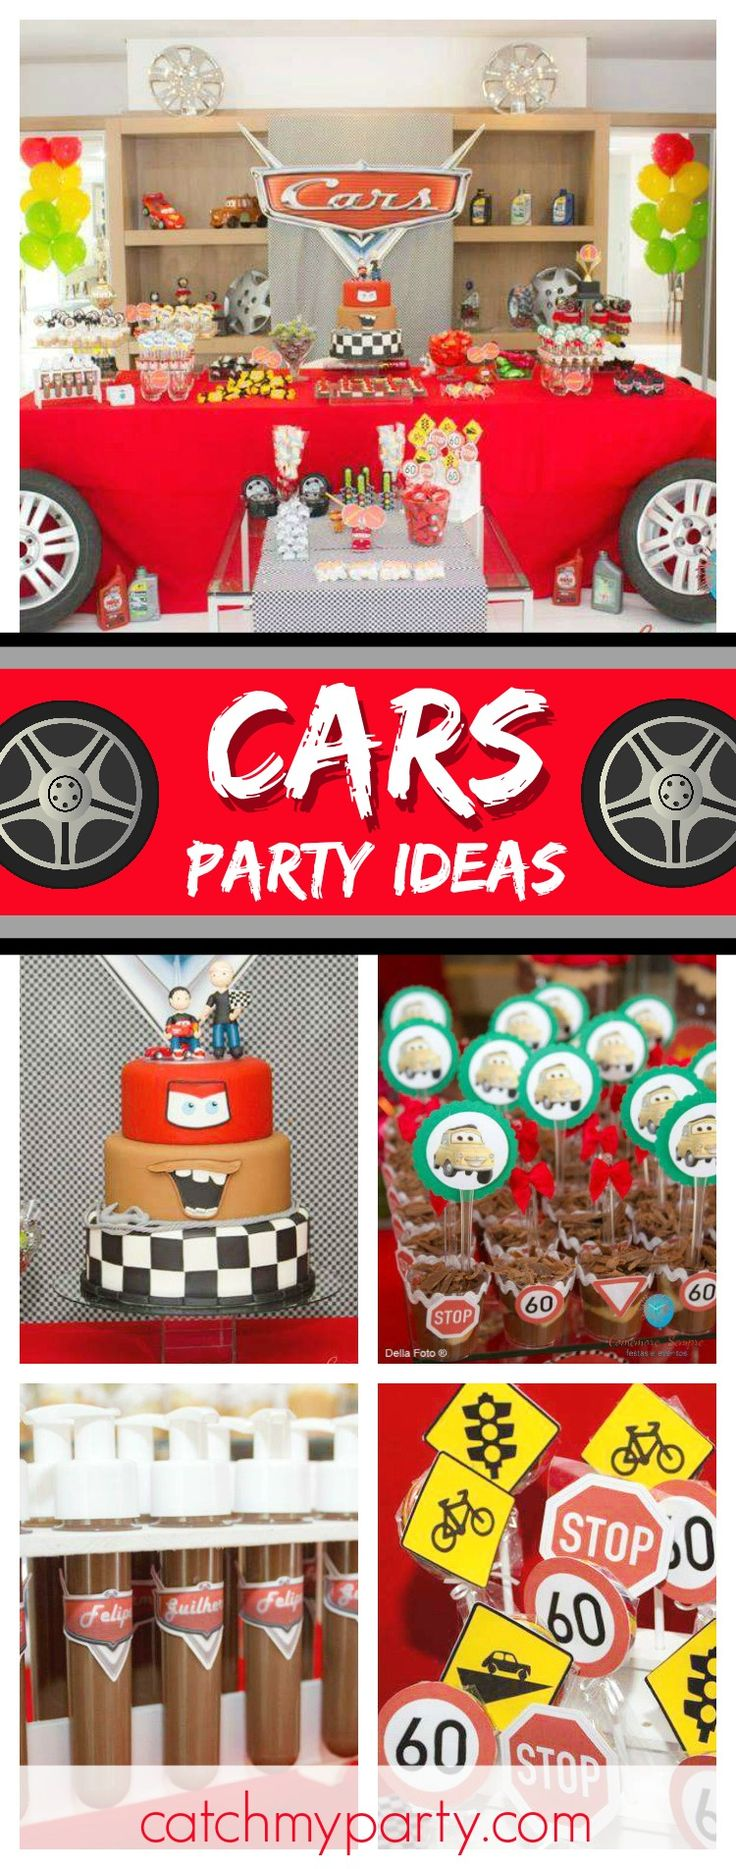 Check out this awesome Cars Birthday party! With Cars 3 coming out in the summer lots of little boys will be loving a party like this one! Love the dessert table! Seemoreparty ideas and share yours at CatchMyParty.com